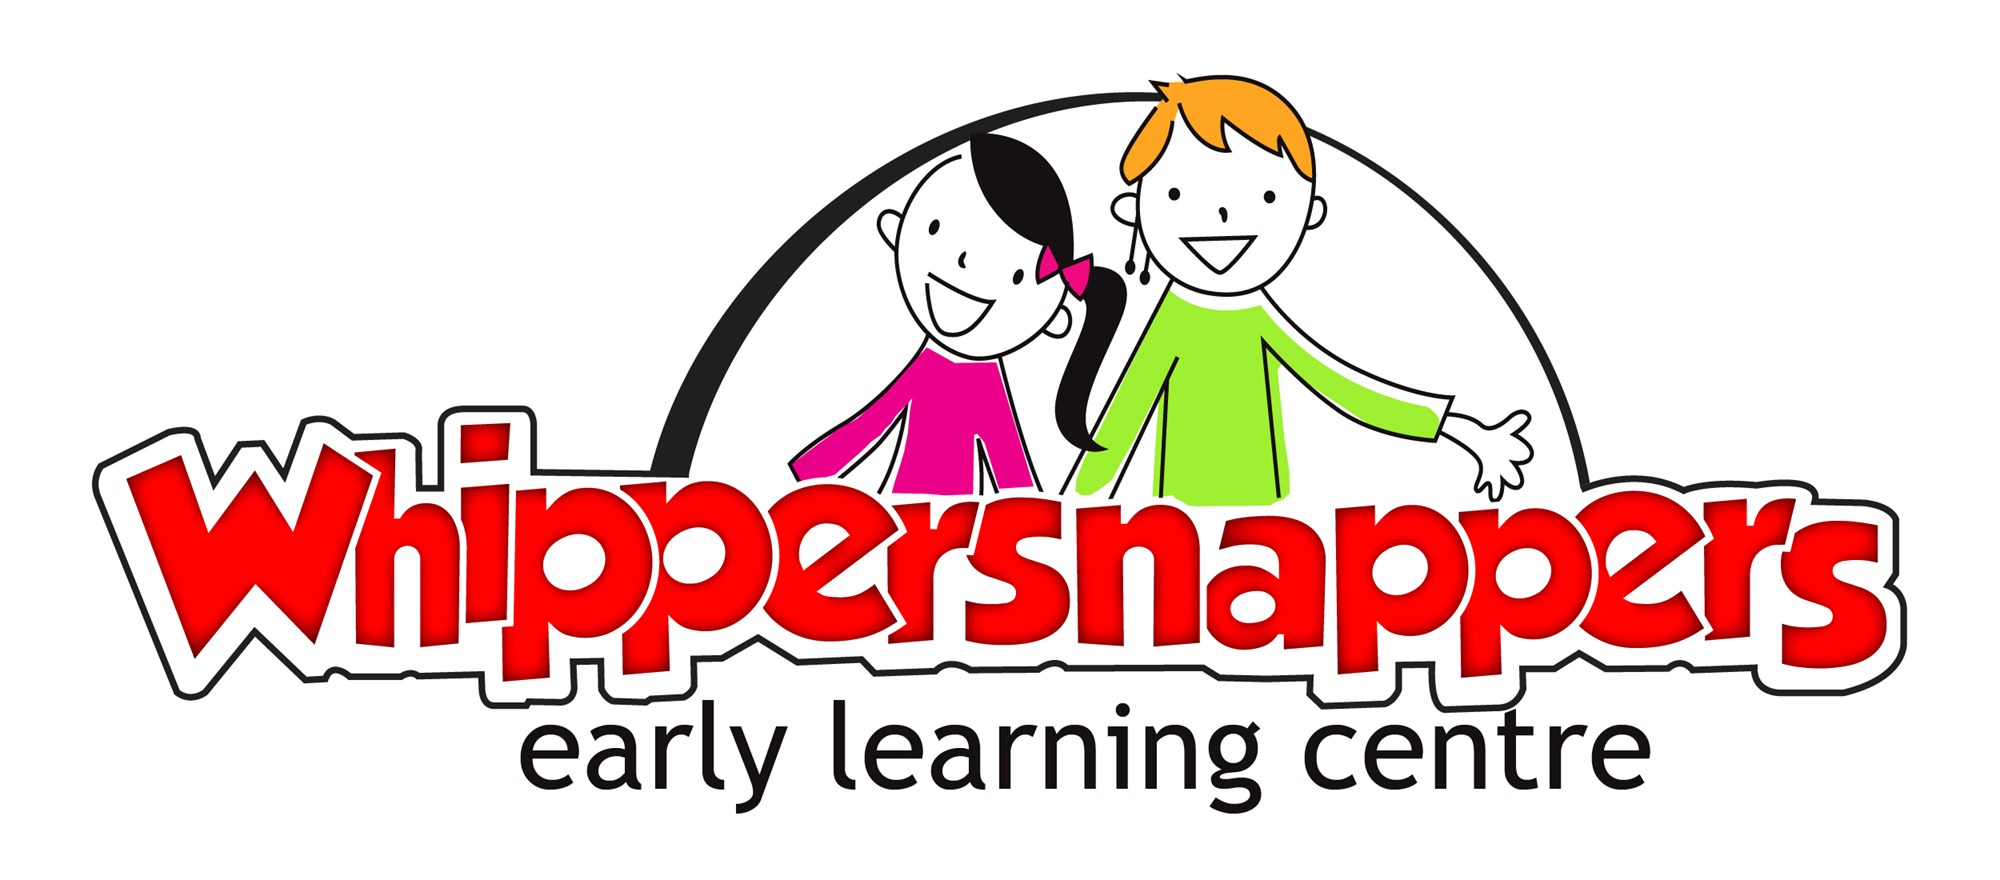 Whippersnappers Early Learning Centre # 2 - Lincoln - CHCH  (4)